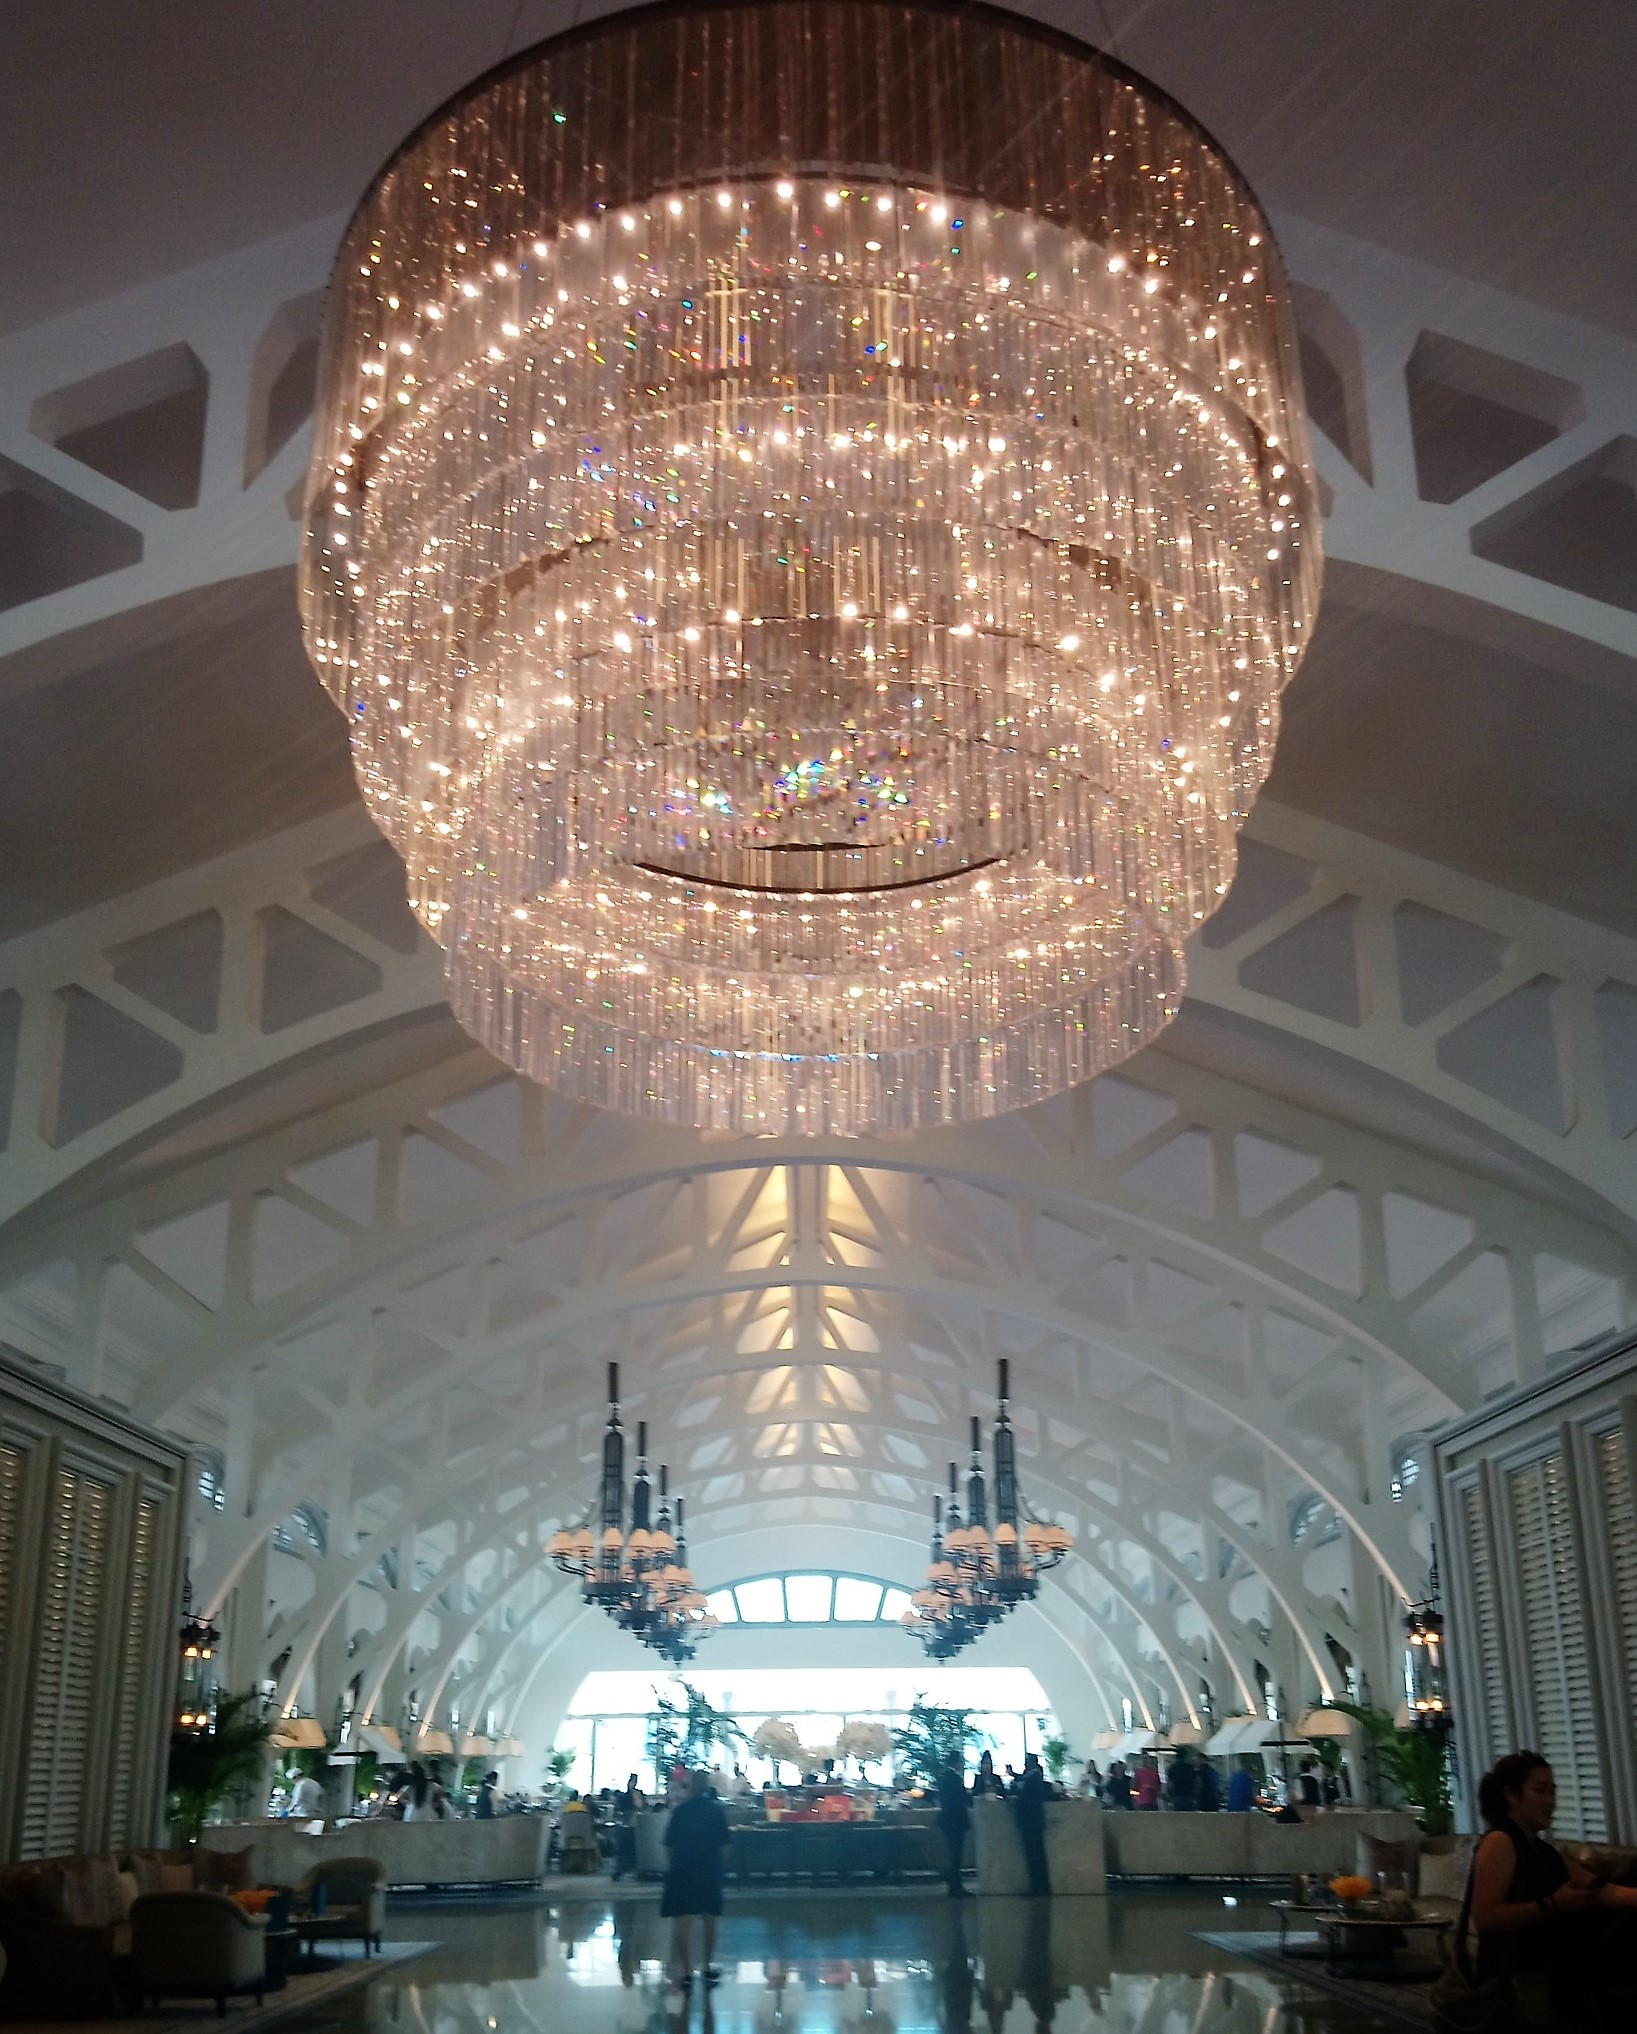 The entrance to The Clifford Pier Restaurant in The Fullerton Bay Hotel Singapore